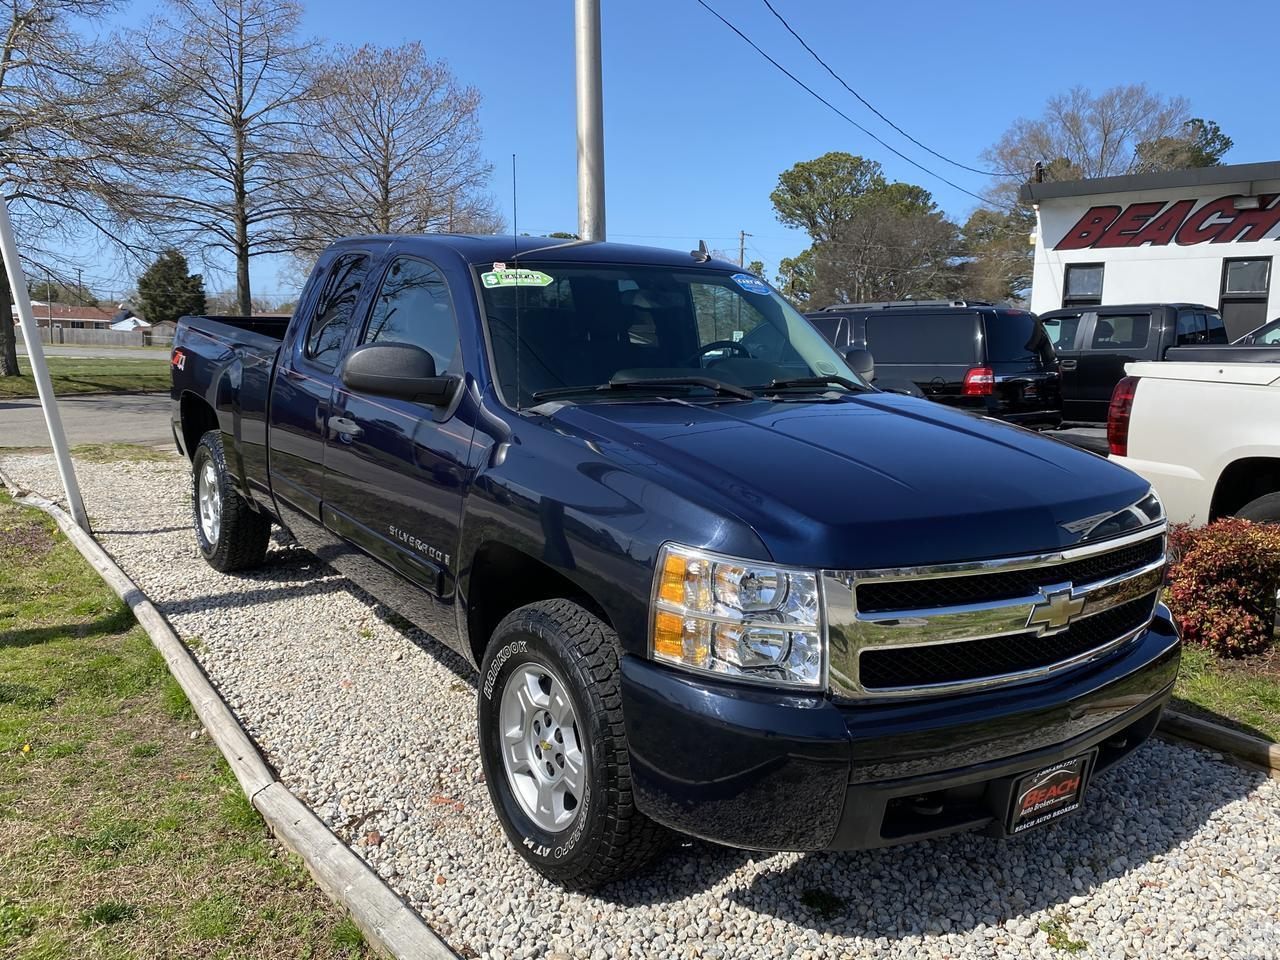 2008 CHEVROLET SILVERADO 1500 LT EXTEND CAB 4X4, WARRANTY, AUX PORT, SINGLE CD PLAYER, ONSTAR, Z-71 PKG, 1 OWNER! Norfolk VA